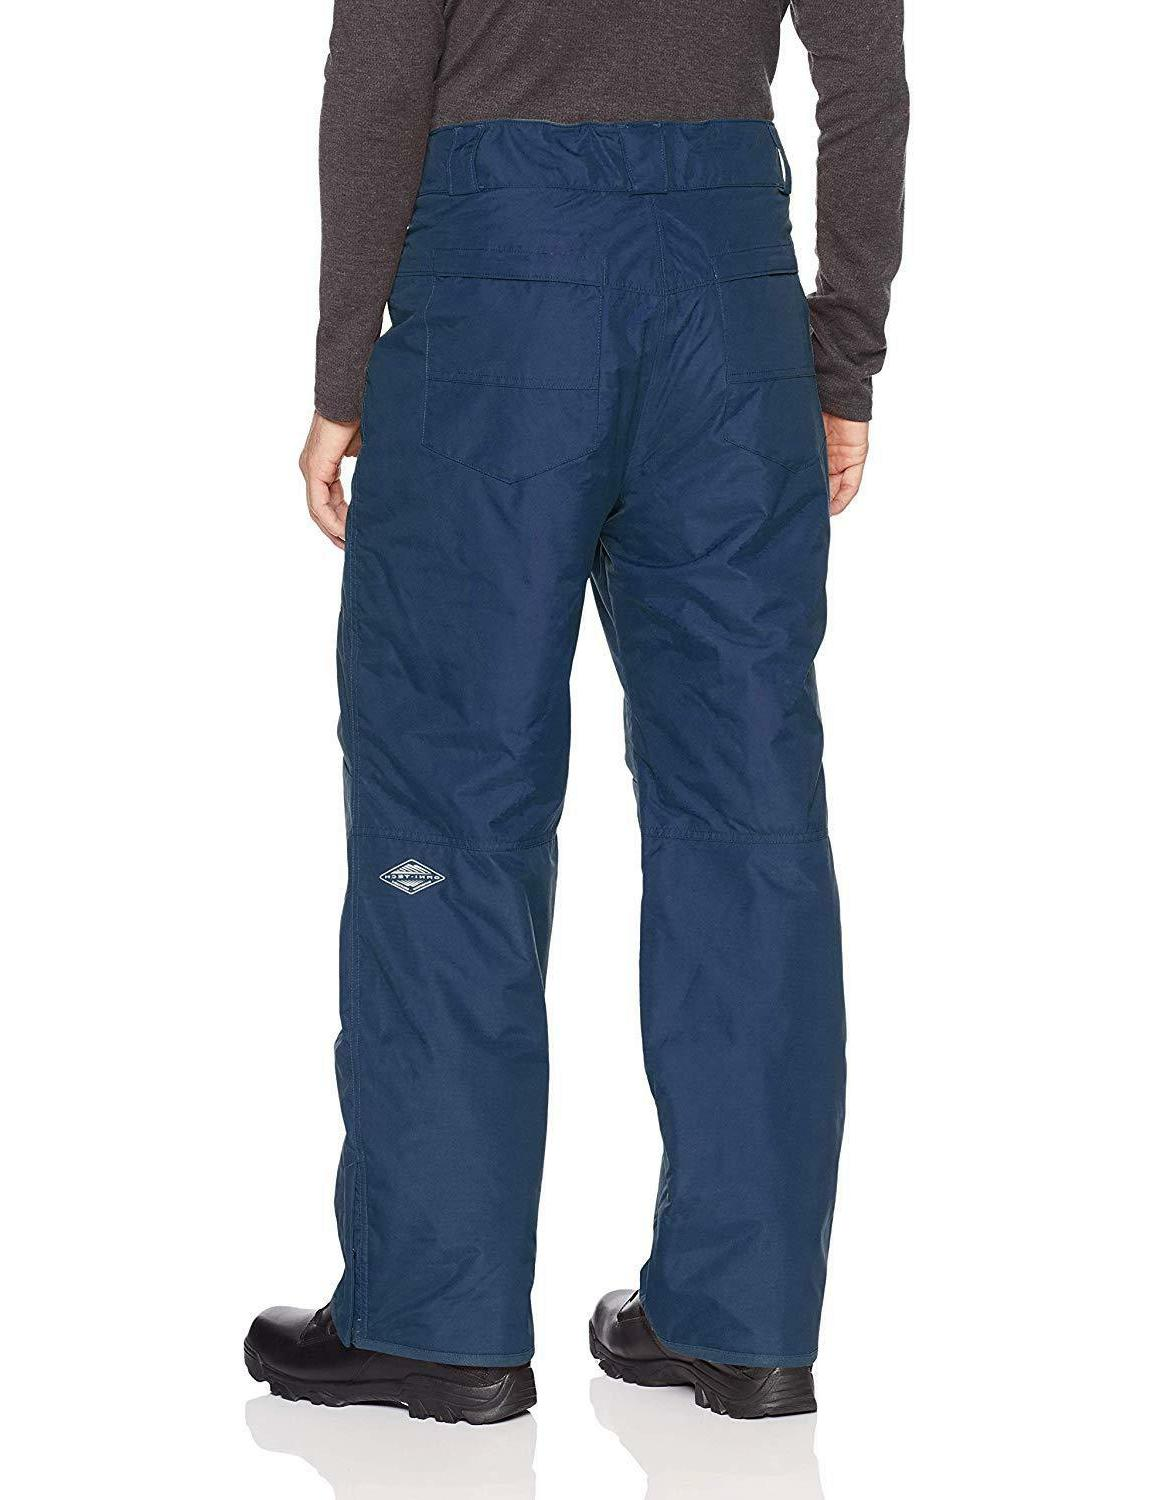 Columbia Men's Bugaboo Pant, Waterproof and Breathable